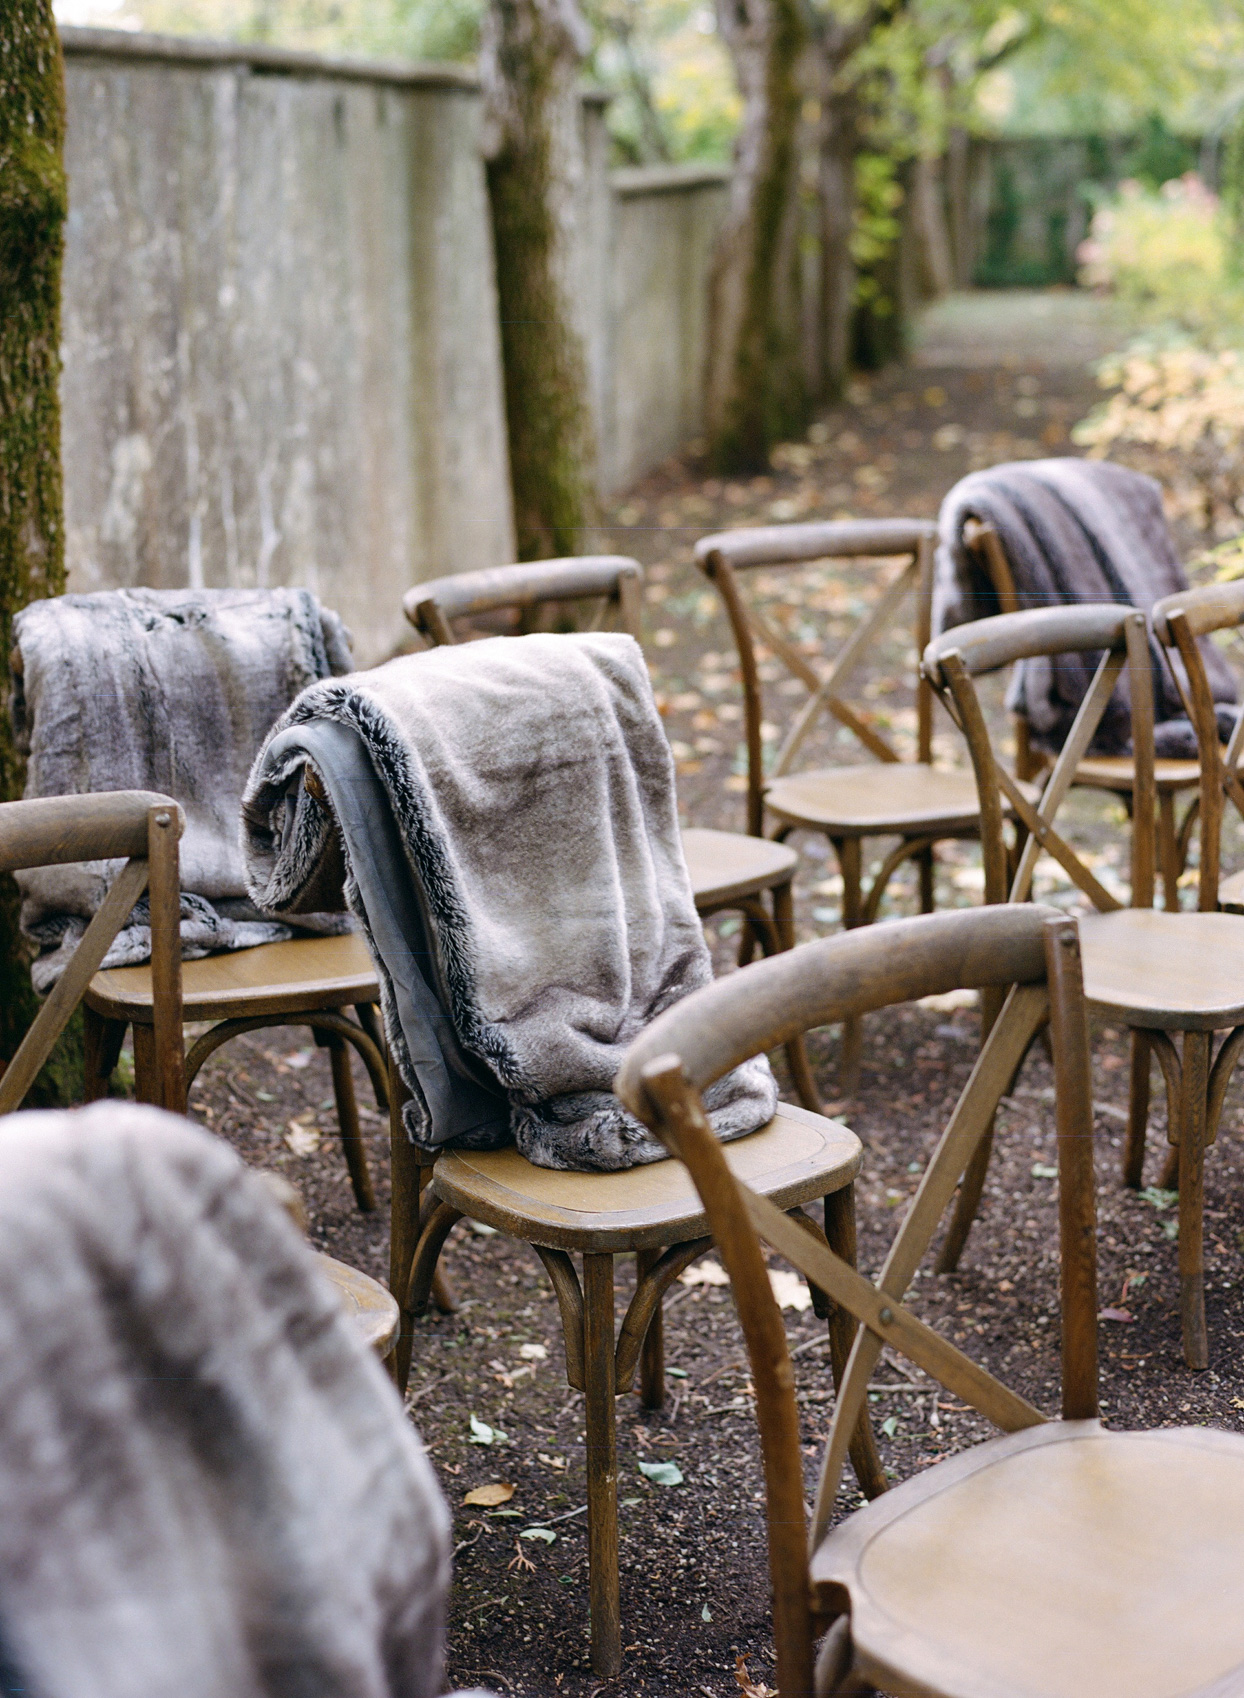 ceremony chairs with cozy blankets